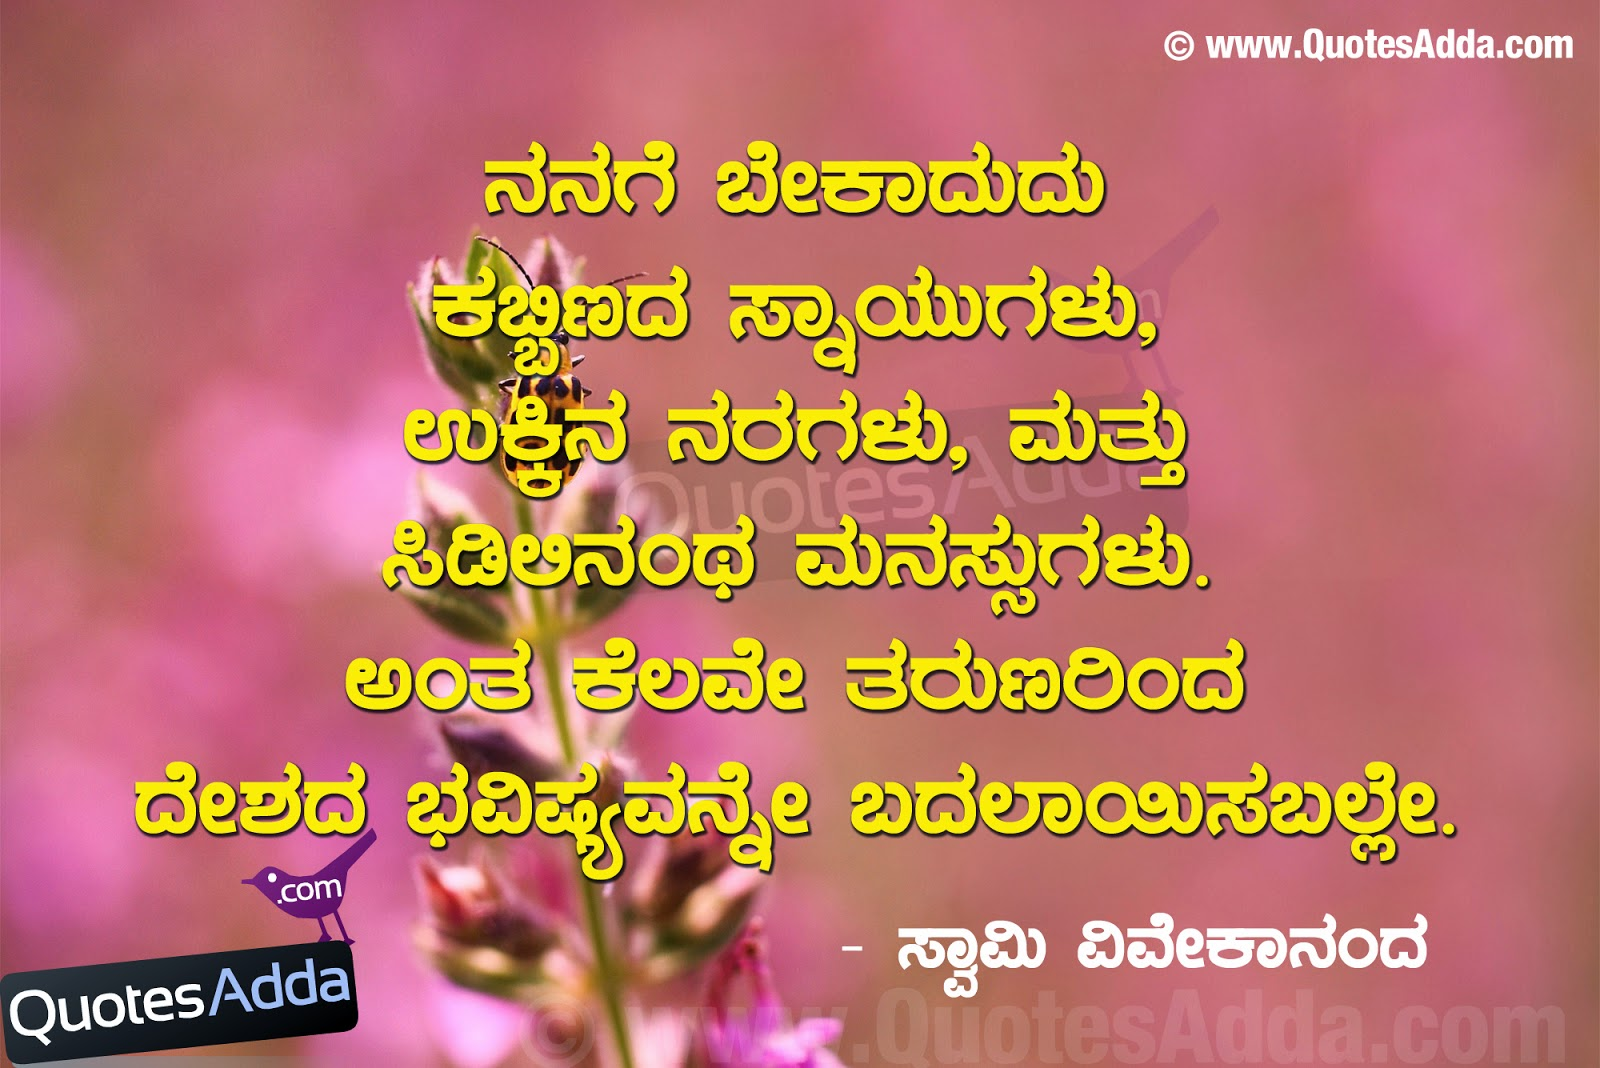 Kannada Language Swami Vivekanada Quotations QuotesAdda ...